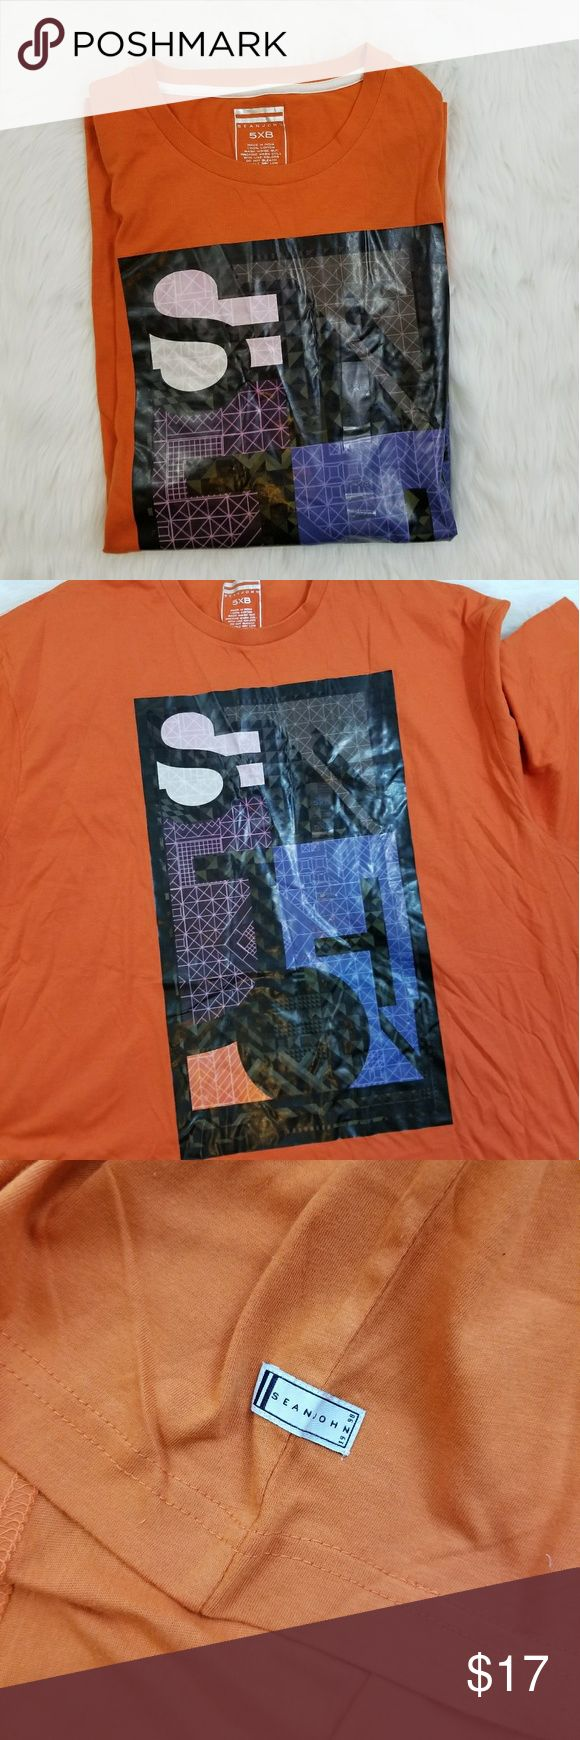 Sean Jean Orange Graphic Short Sleeve Tee 5XB Brand new with tags. No rips or stains. The graphic on the t shirt looks off centered to me and there is a very tiny pin sized hole on the collar. Shown in photo #4. Men's size 5XB. Sean John Shirts Tees - Short Sleeve